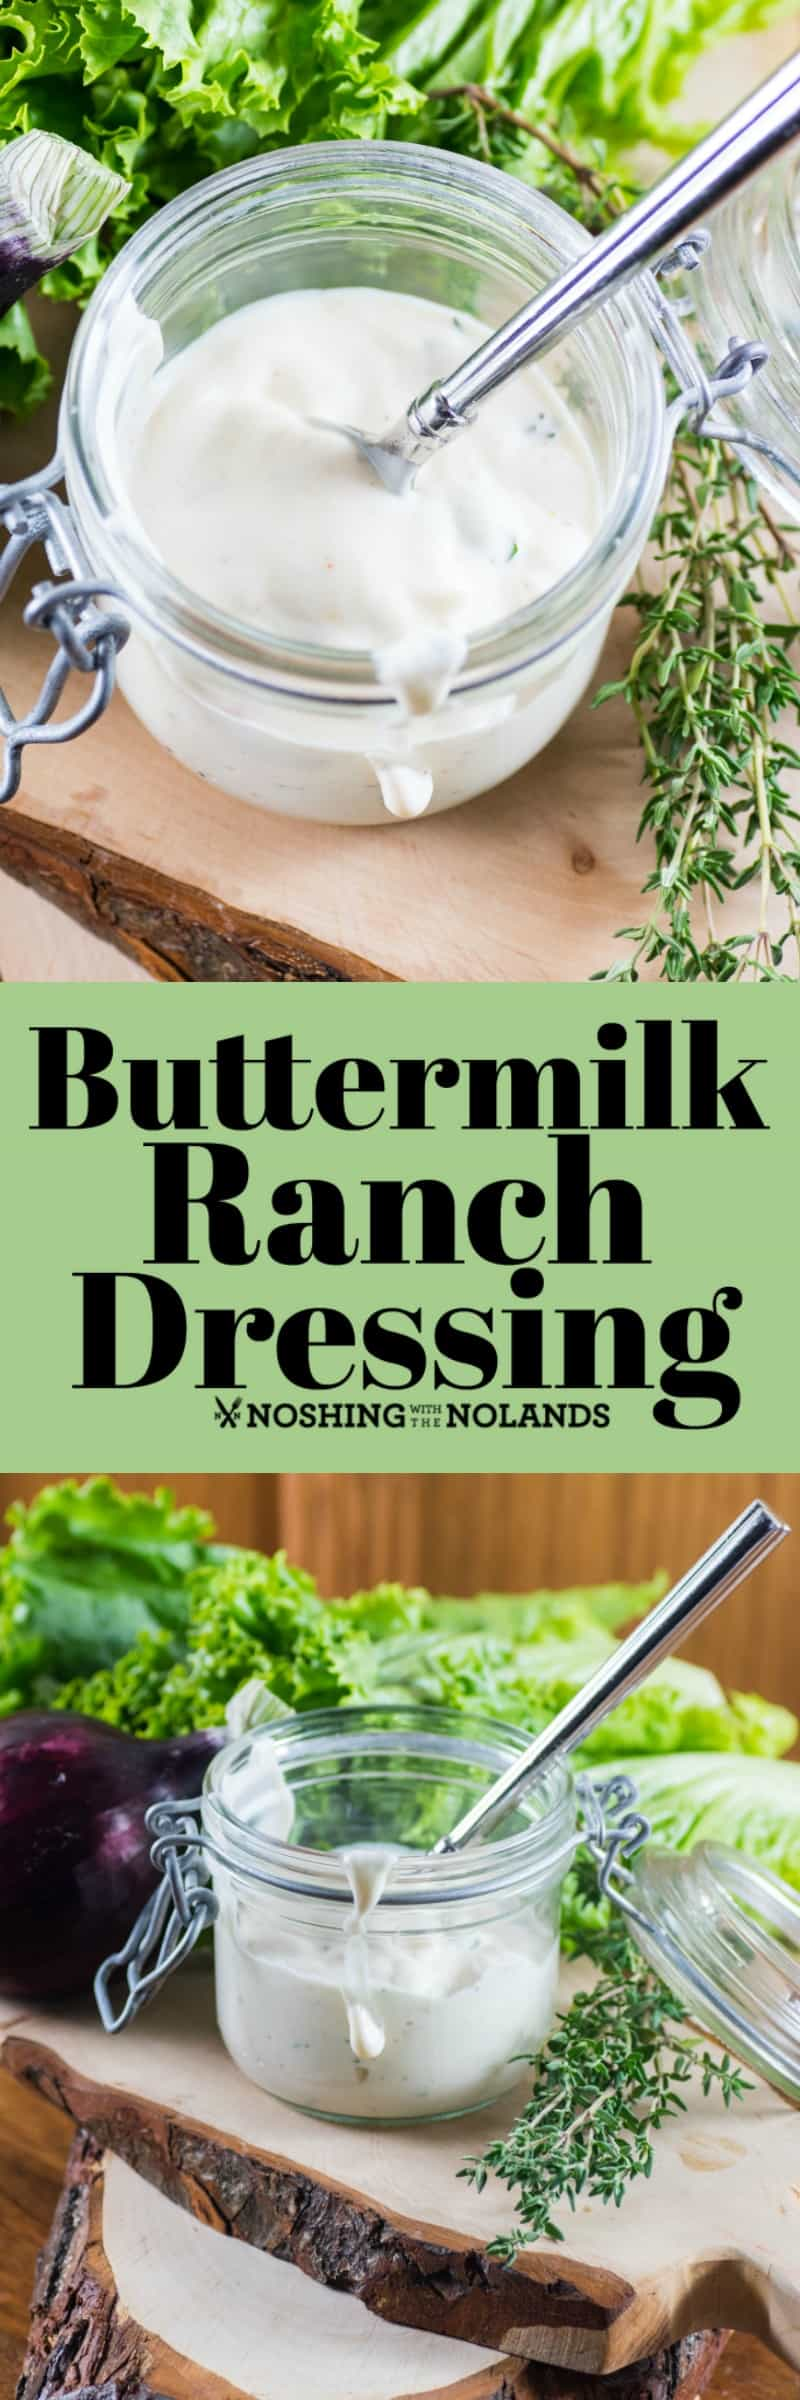 Buttermilk Ranch Dressing is a very popular dressing that is simple to make homemade!! #buttermilk #ranchdressing #homemade